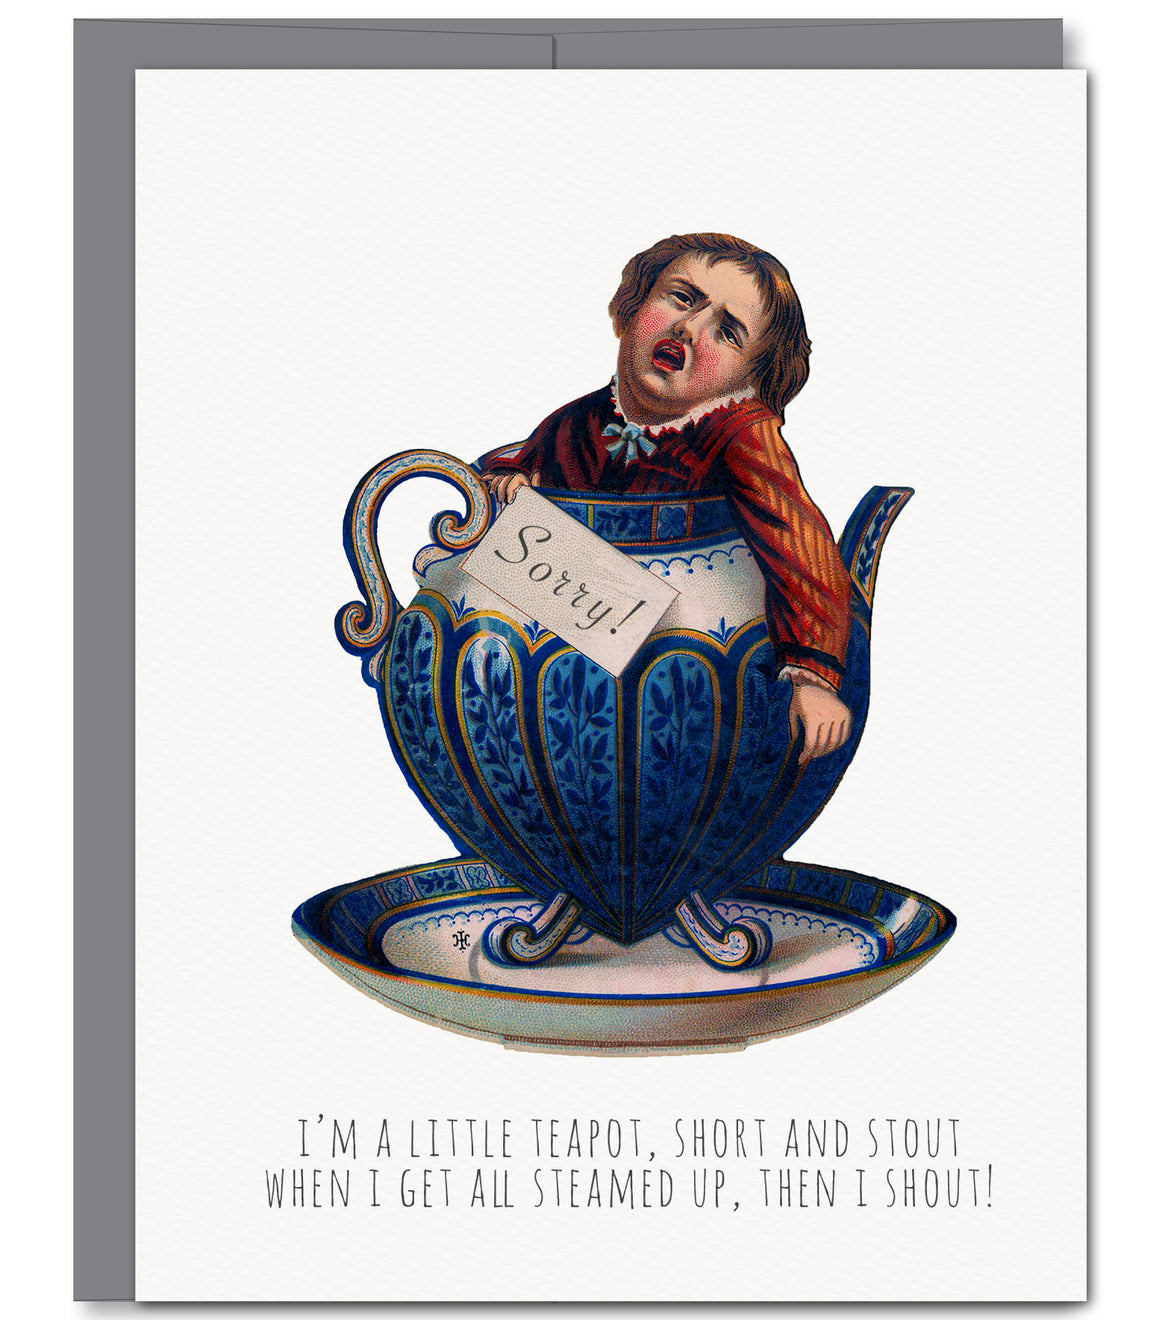 Teapot Apology Everyday Glitter Greeting Card | Sylvan Gate Design